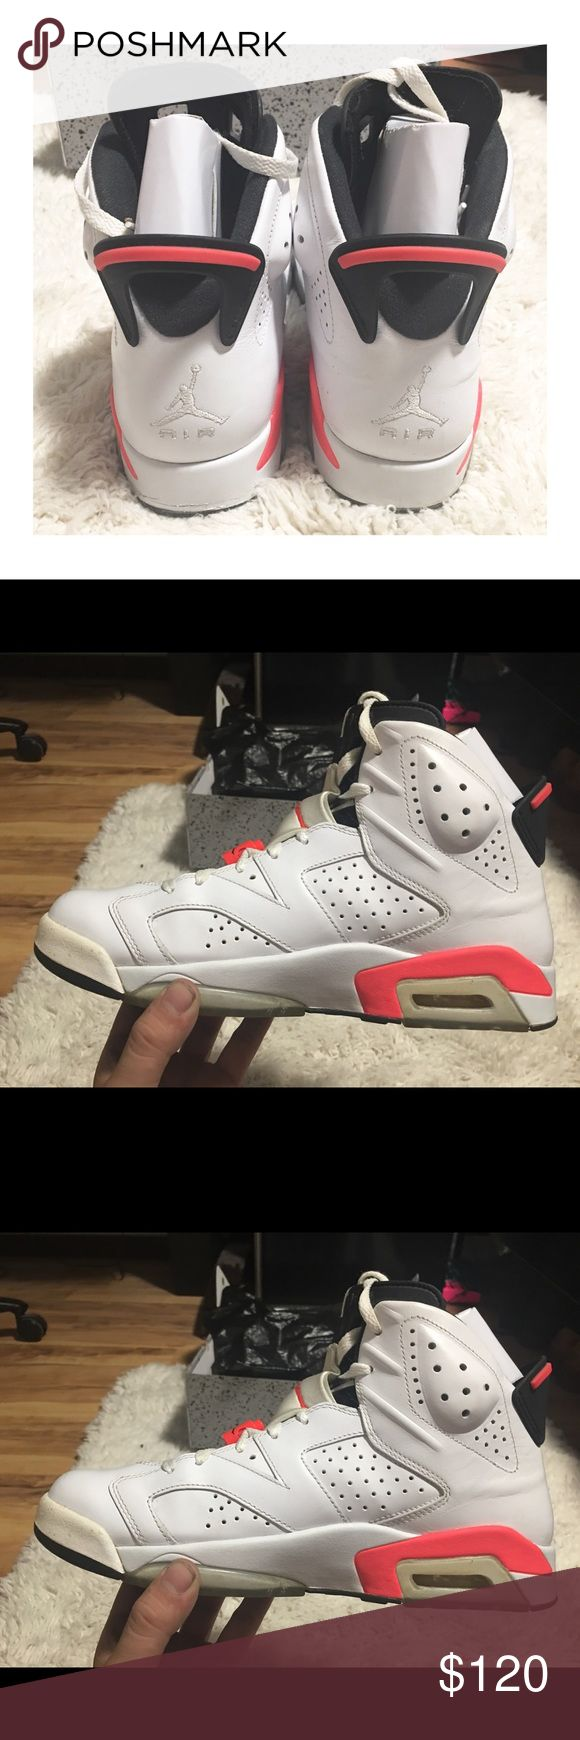 Air Jordan Retro 6's White I'm selling these Jordan's for my fiancé. He doesn't wear them anymore and has kept them in great condition, with box and tissue!  • No scuffs, stains, tears  • Like New condition  • Authentic Jordan 6's • Box, Tissue, rag on box Air Jordan Shoes Sneakers